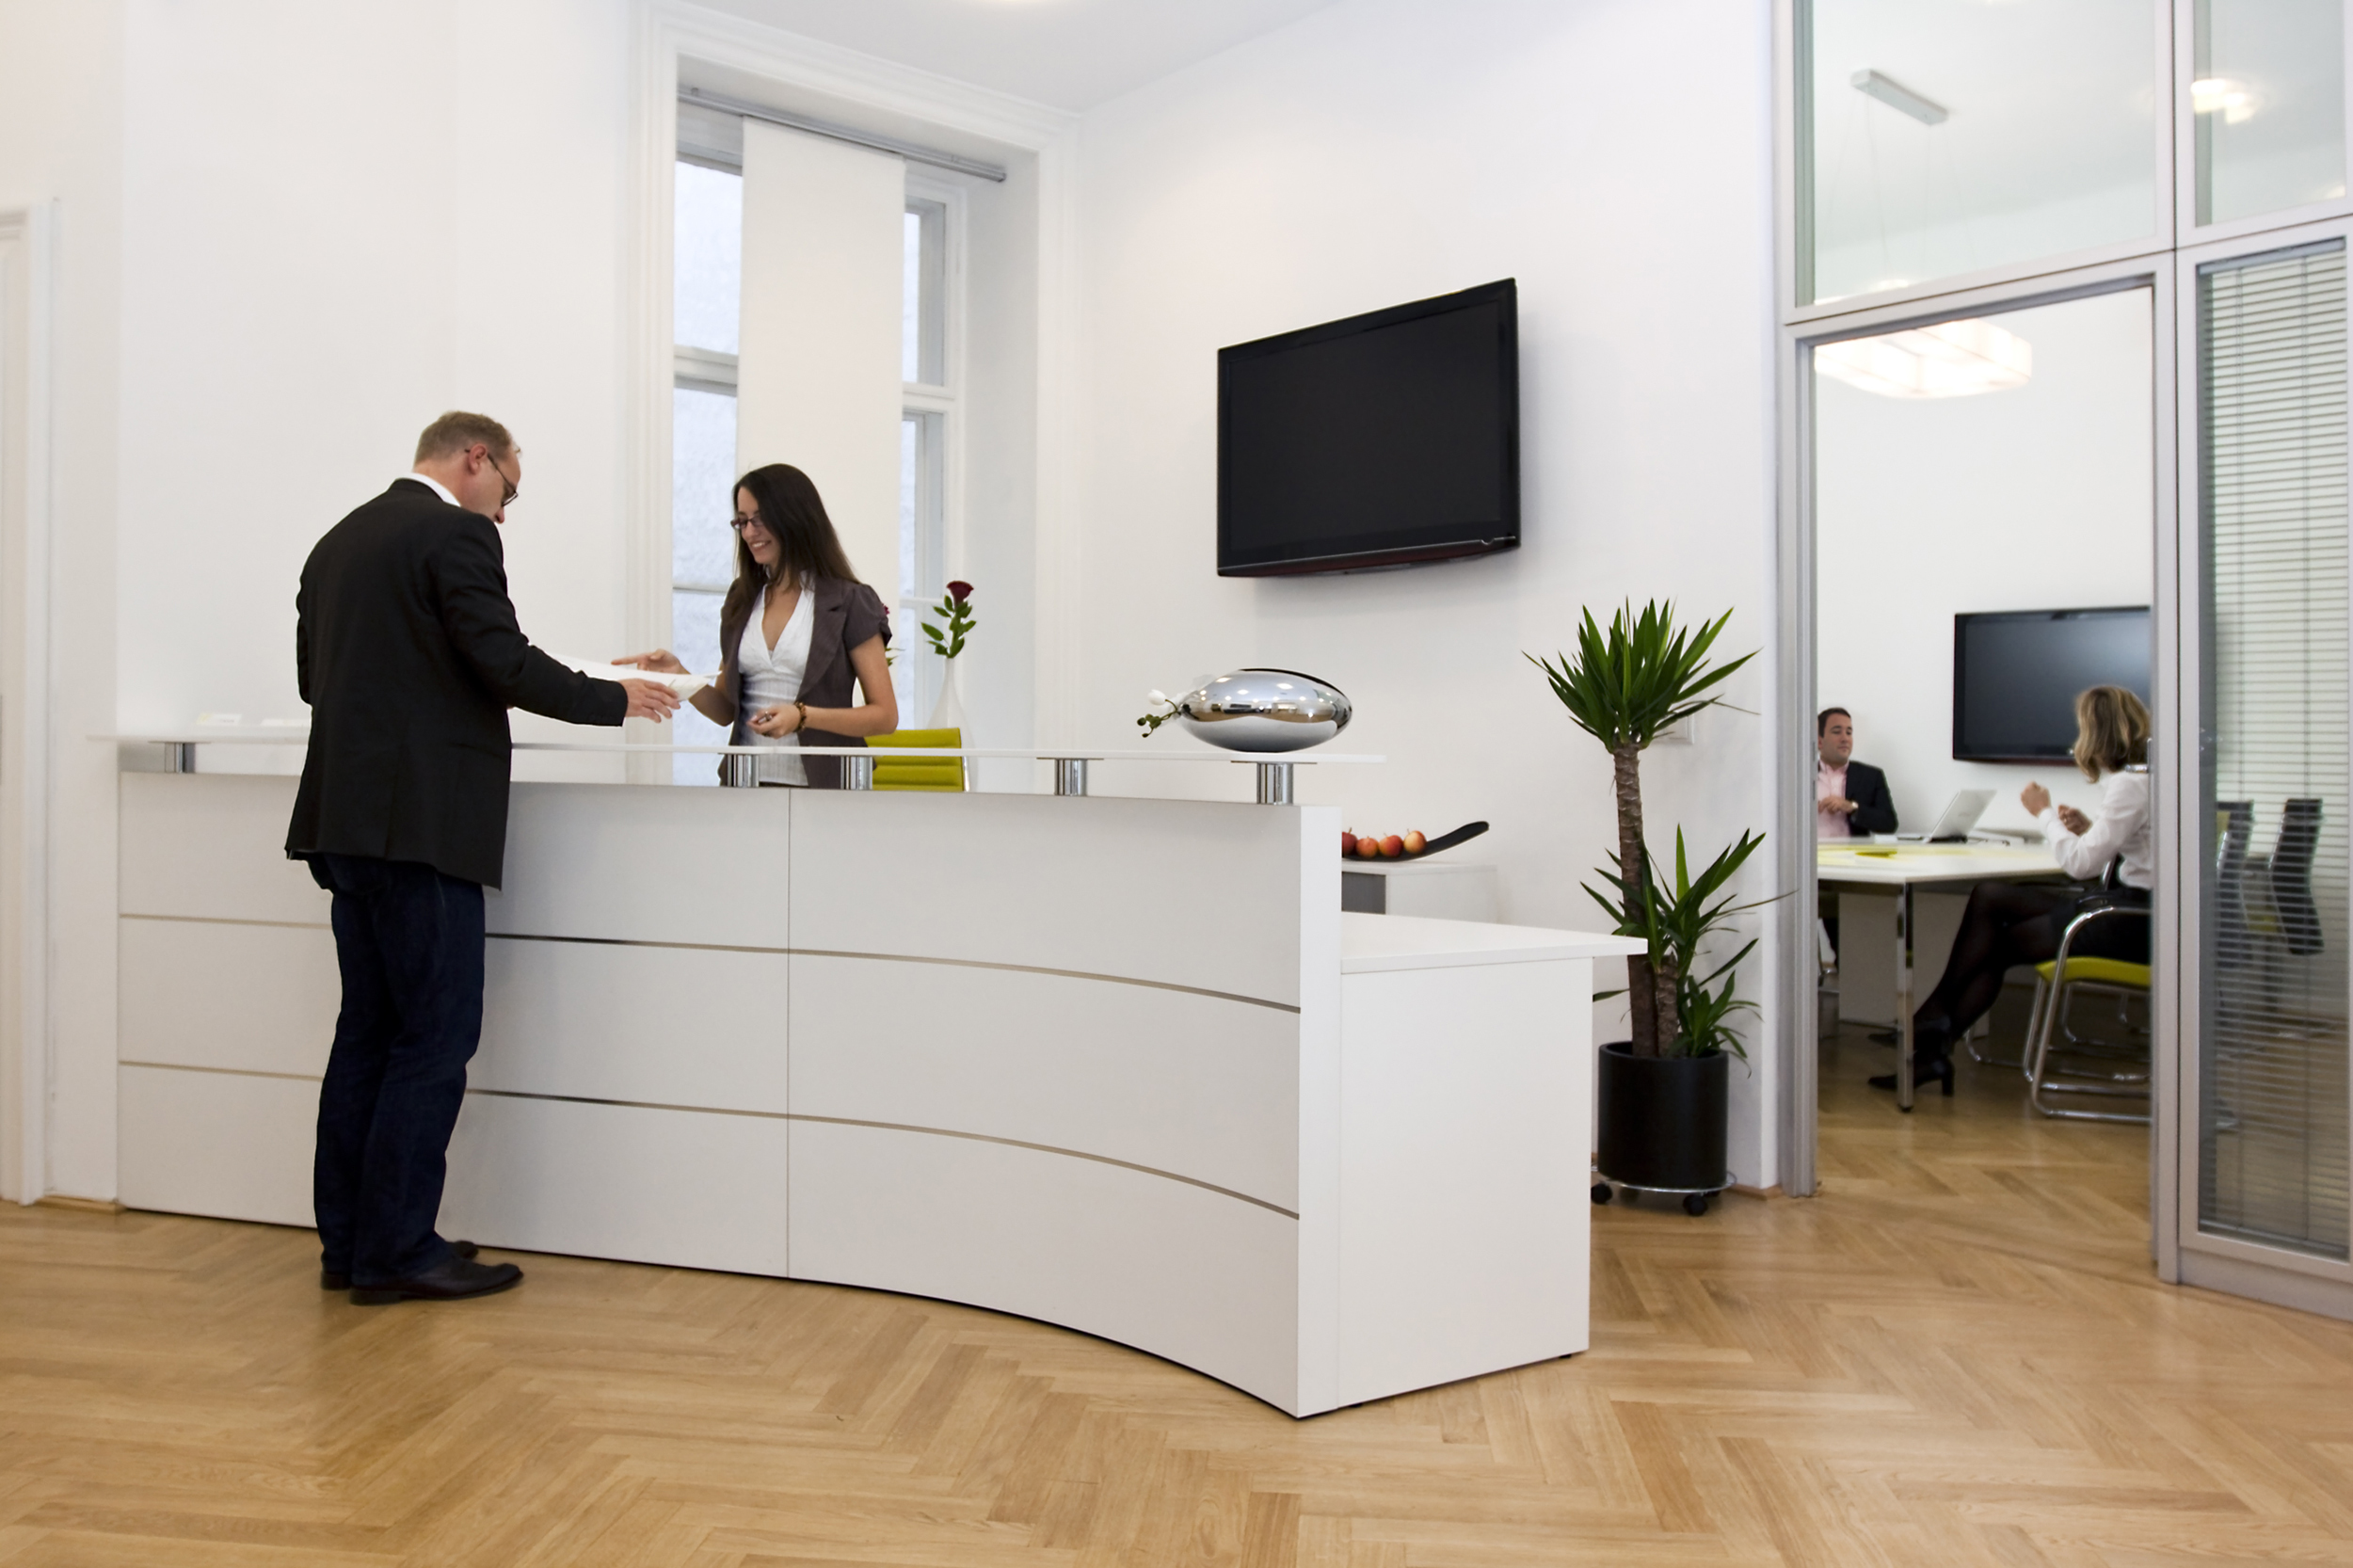 5 Major Office Security Fails That Could Have Been Prevented